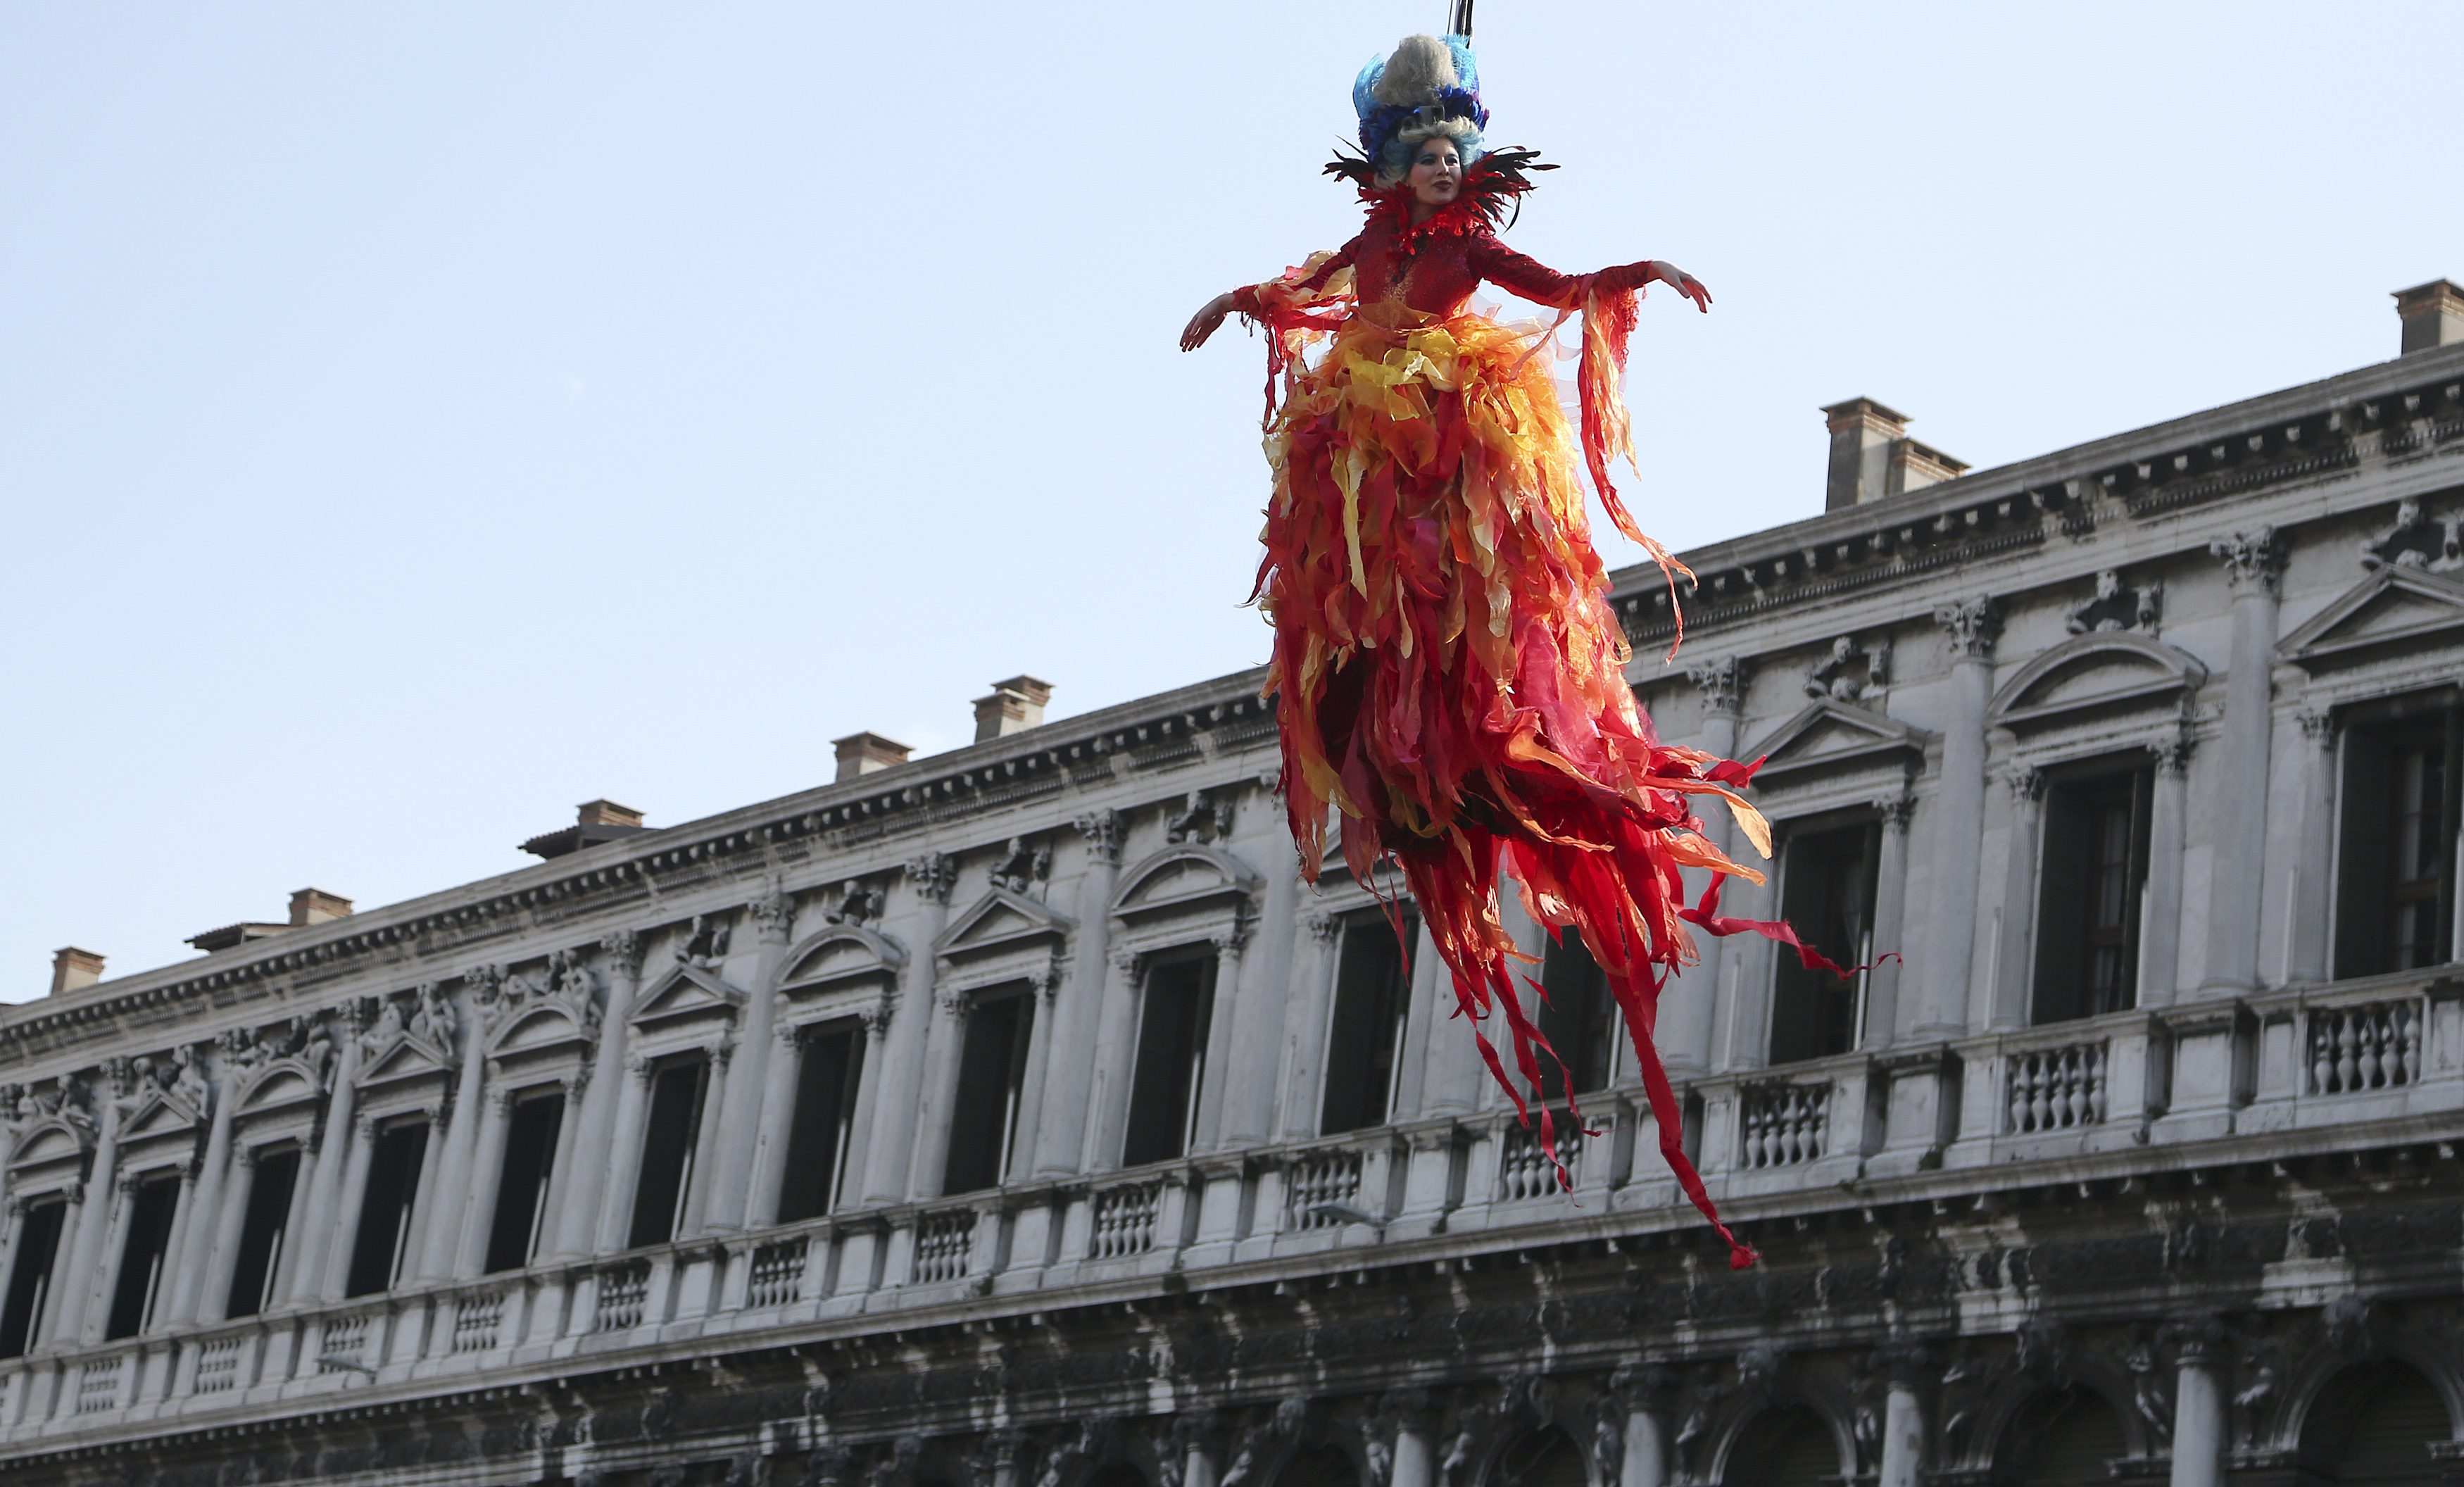 The traditional Columbine descends from Saint Mark's tower bell on an iron cable during the Venetian Carnival in Venice February 8, 2015. Photo by Stefano Rellandini/REUTERS.